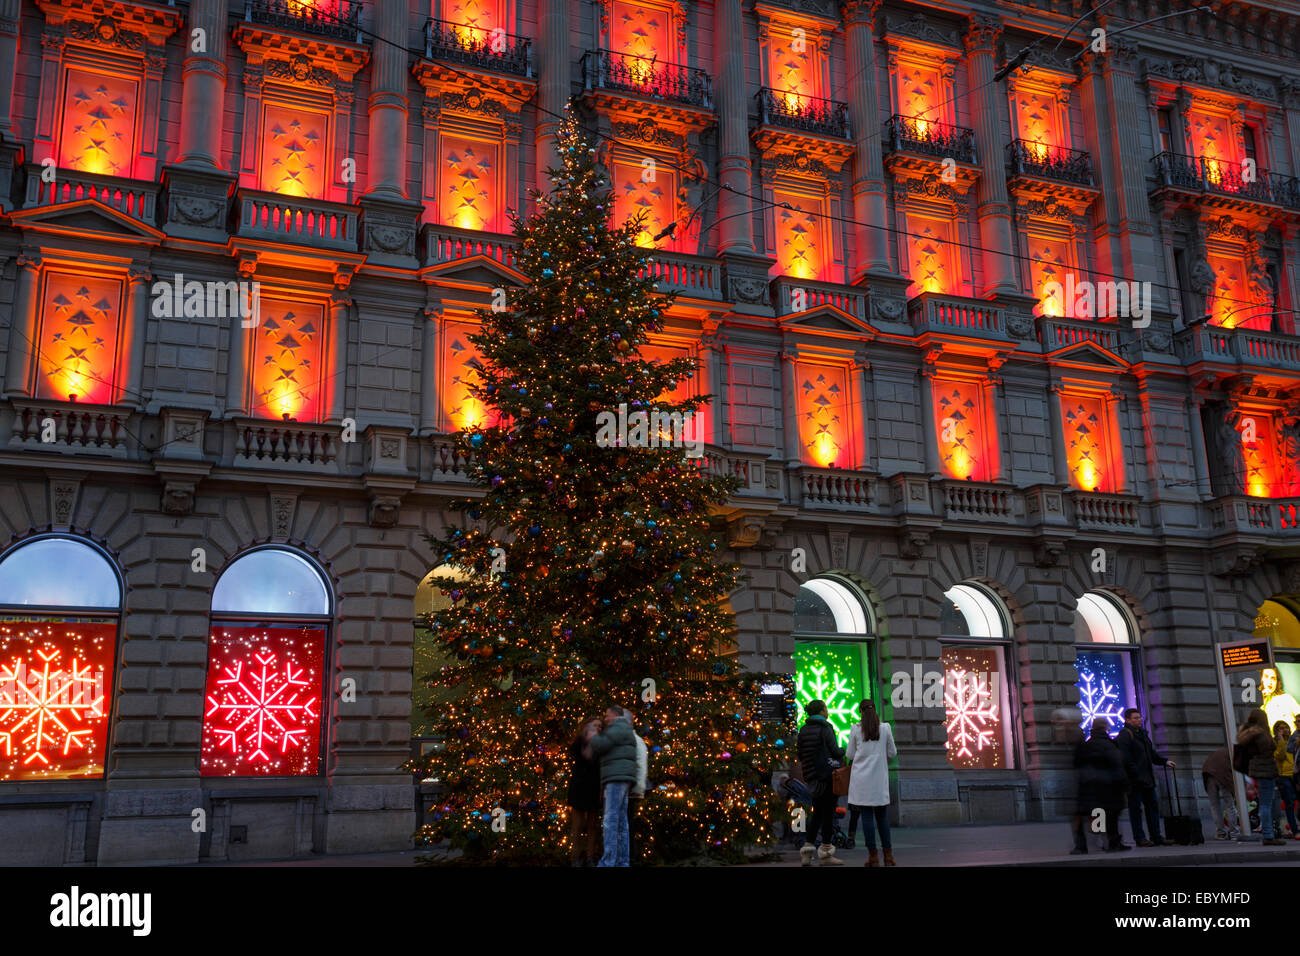 Christmas decoration of the Credit Suisse building at the Paradeplatz, Zurich, Switzerland. - Stock Image